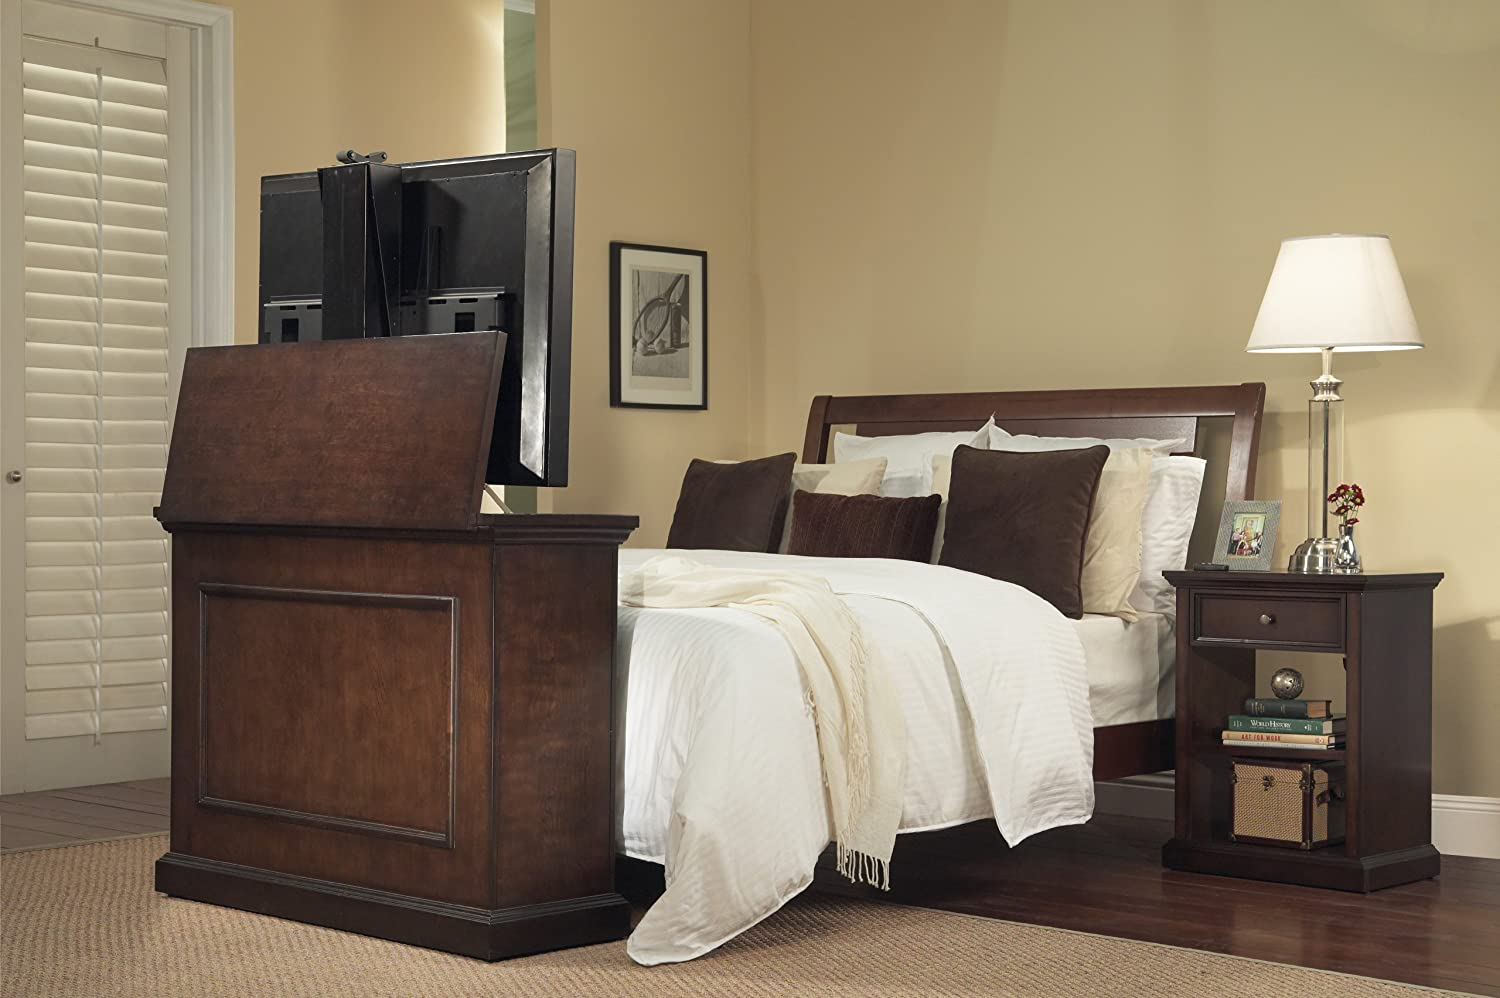 Amazon.com: Touchstone 72008 Elevate TV Lift Cabinet  50-Wide Television  Stand Wood  Espresso: Kitchen & Dining